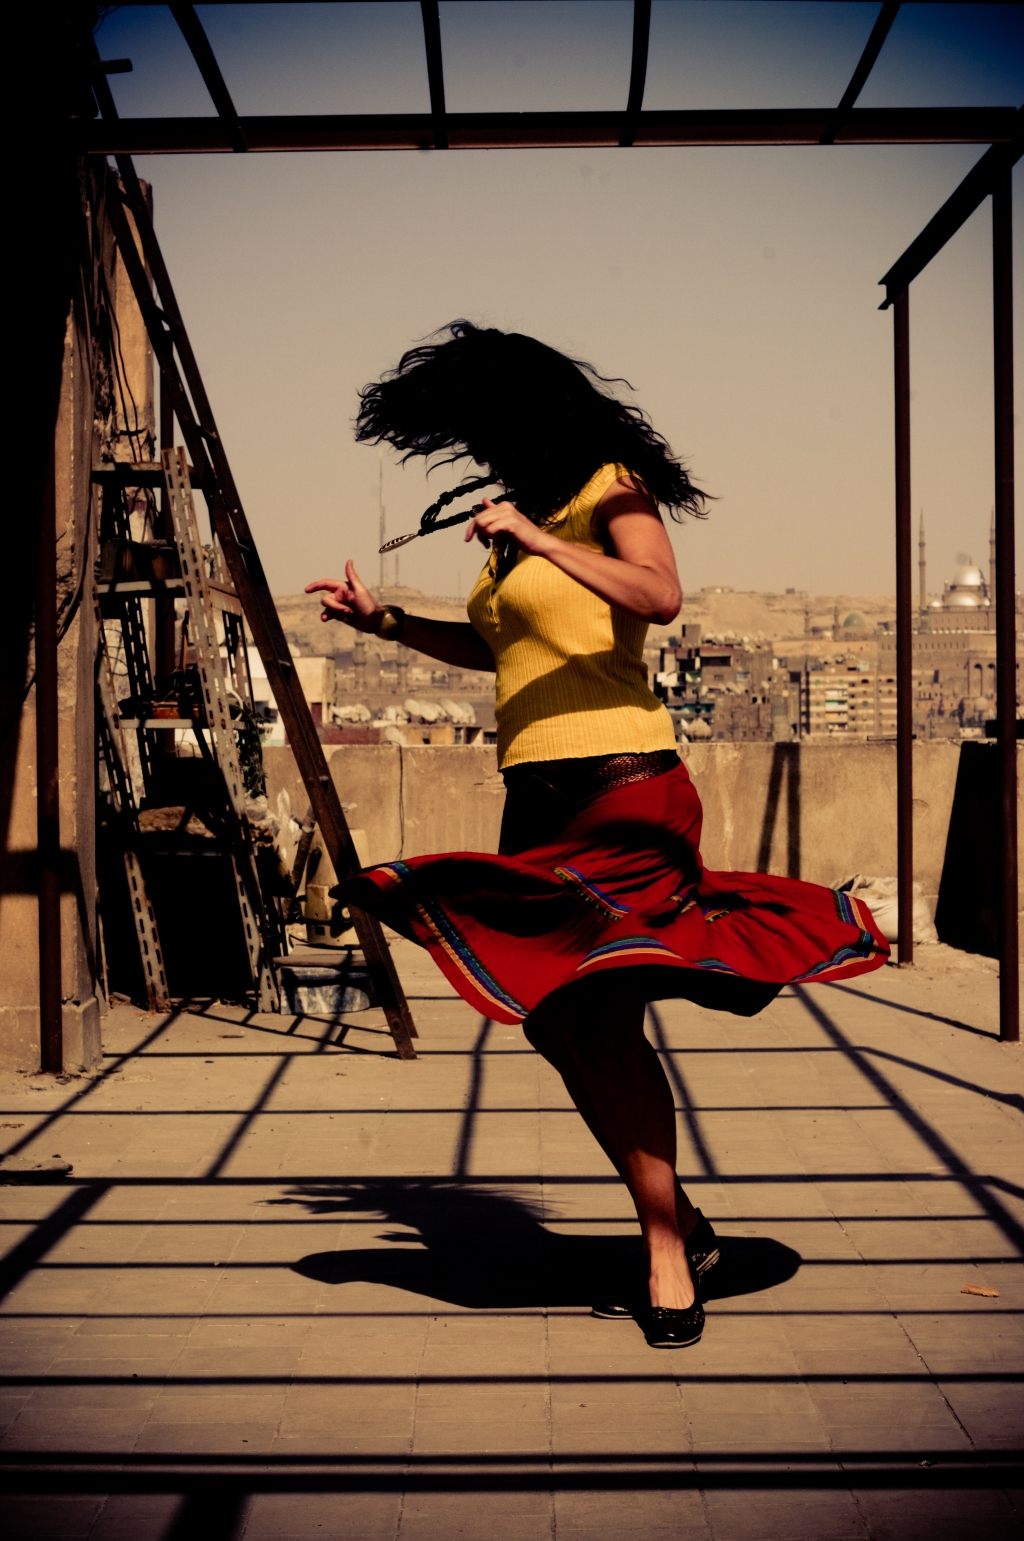 Whirling dervish,photography,Cairo,Girl,Spin,rooftop,dress,evening